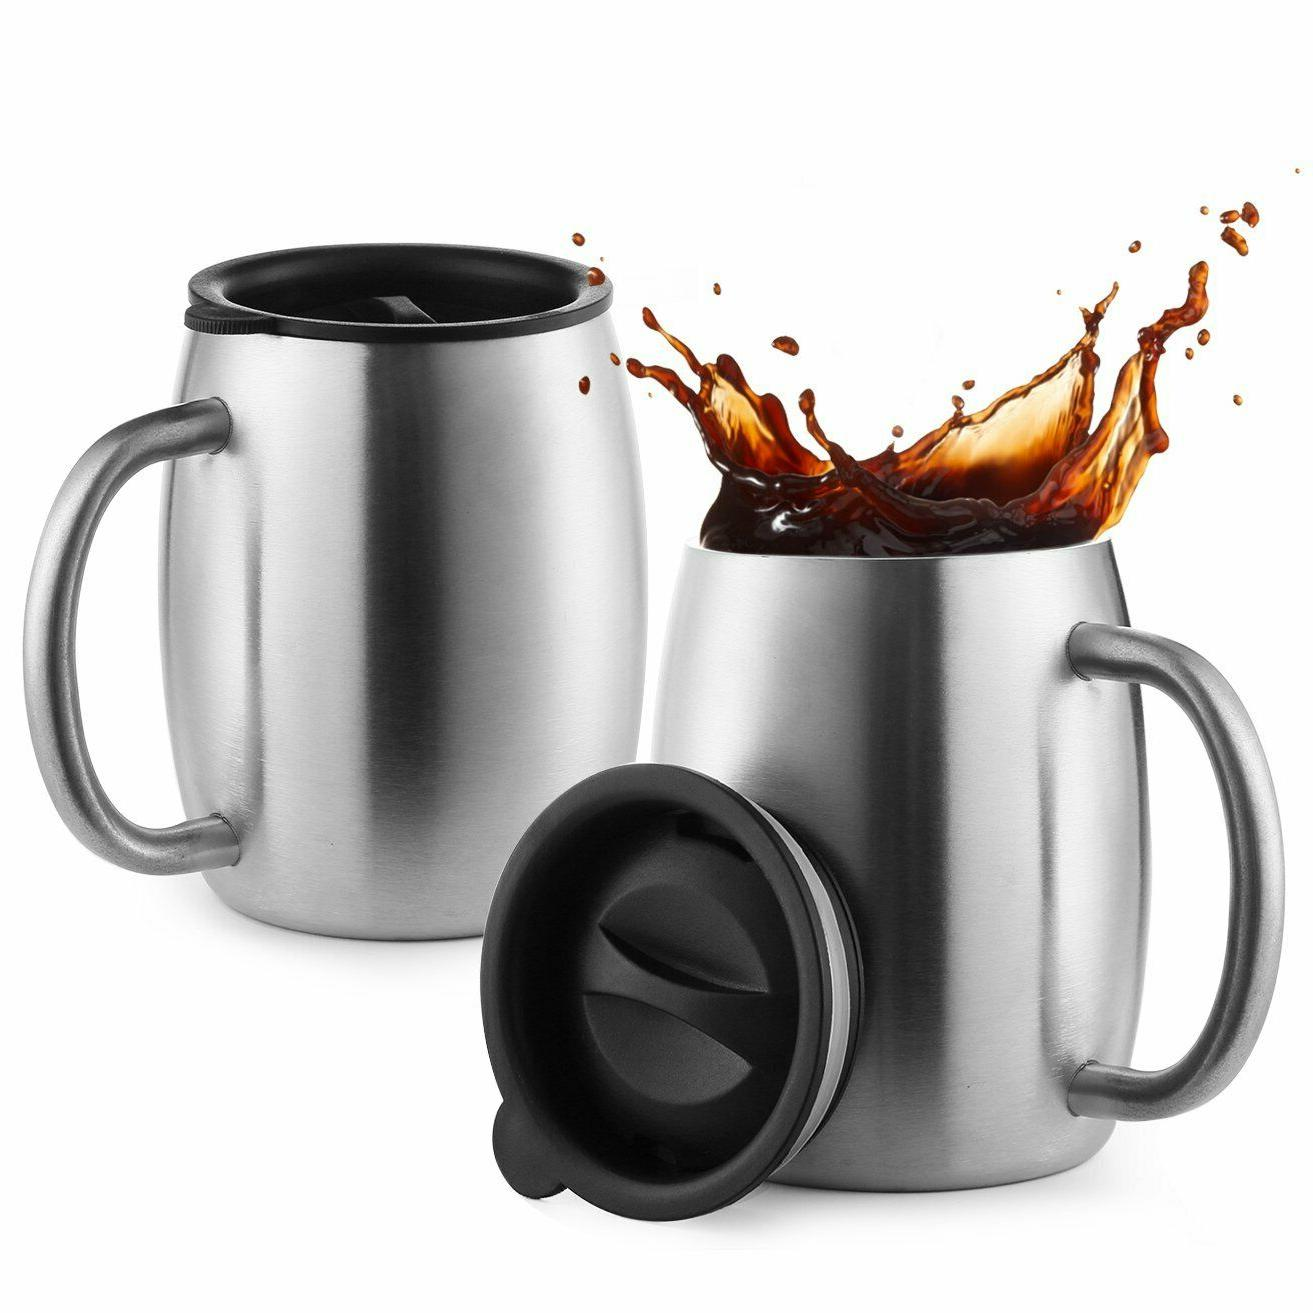 Stainless Steel Coffee Mugs with Spill Resistant Lids, 14 Oz